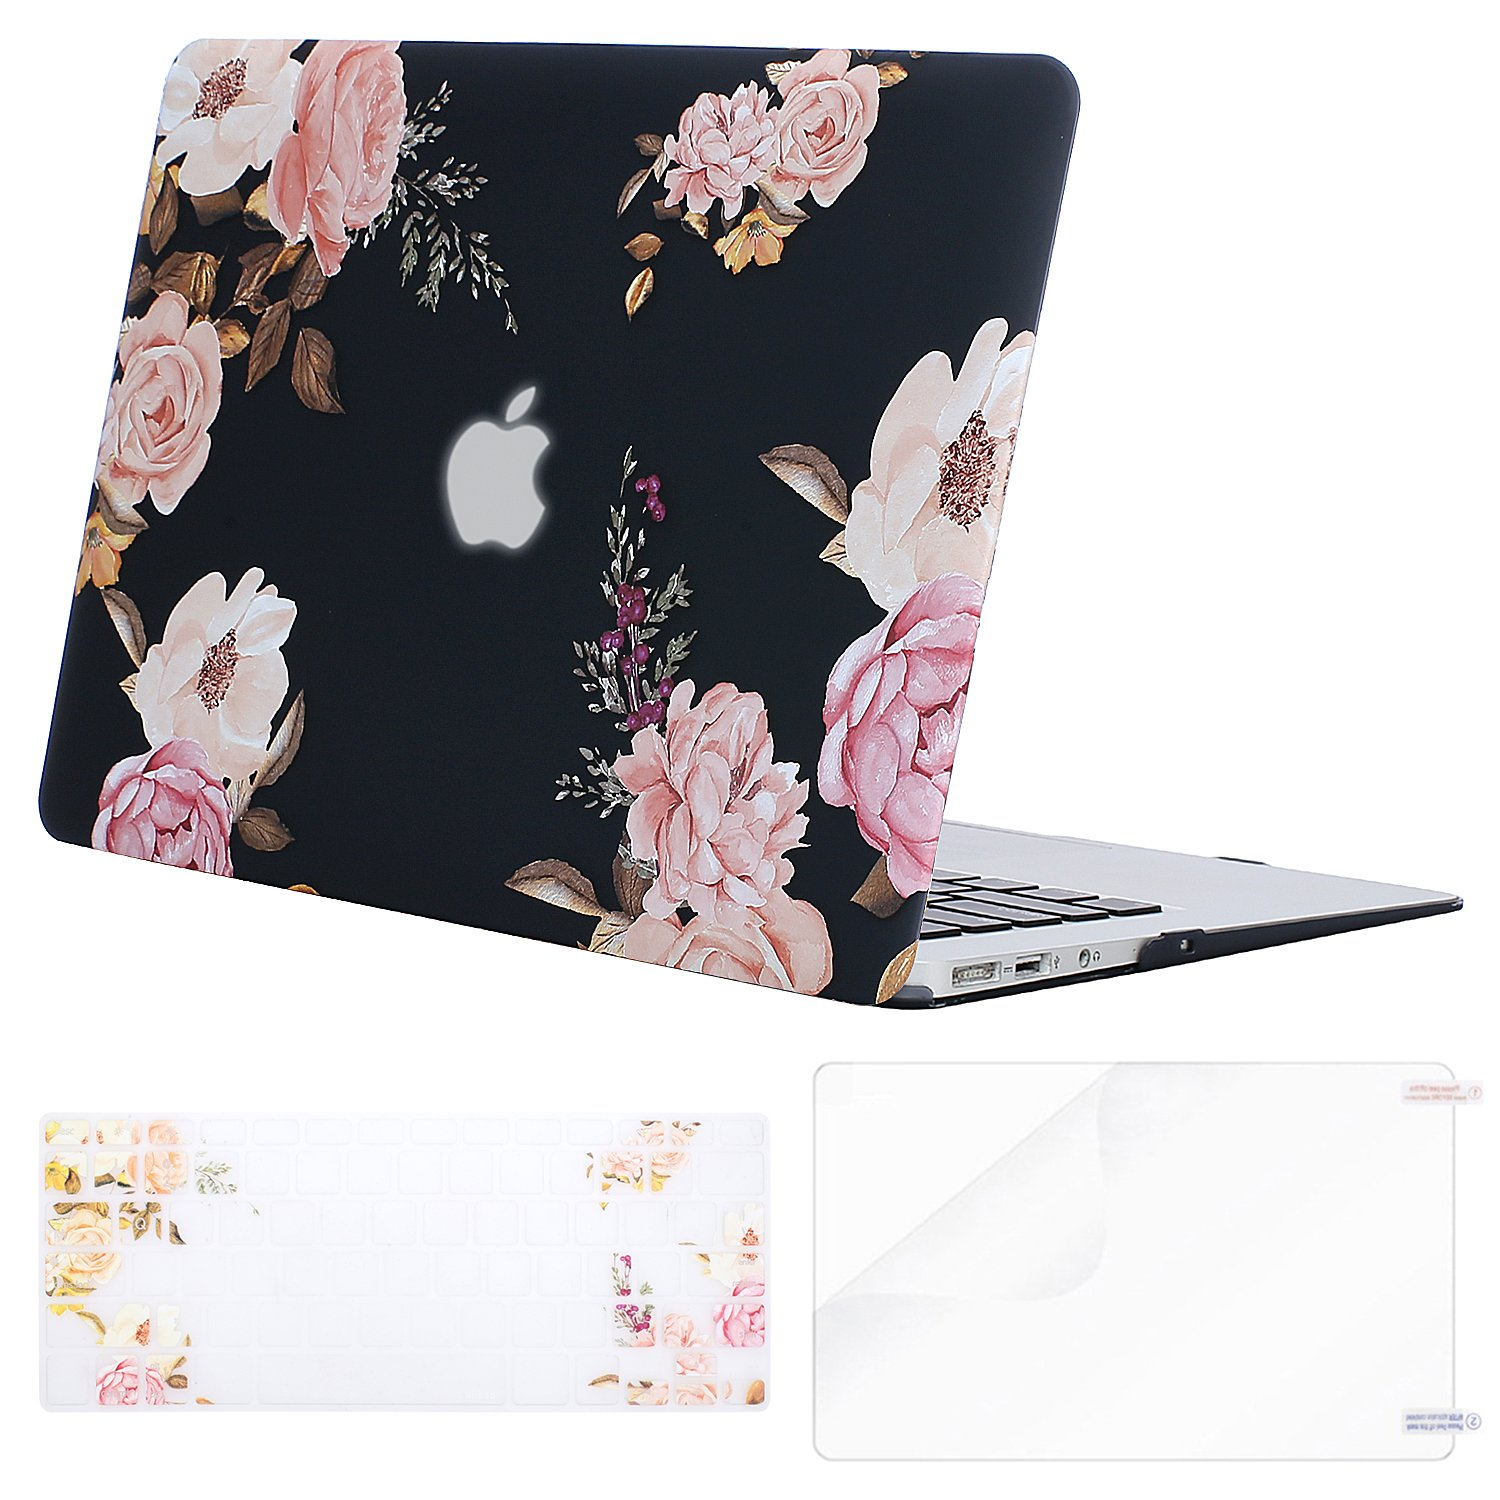 MOSISO Plastic Pattern Flower Hard Case Shell with Keyboard Cover with Screen Protector Compatible MacBook Air 13 Inch (Model: A1369 and A1466), Peony on Transparent Black Base